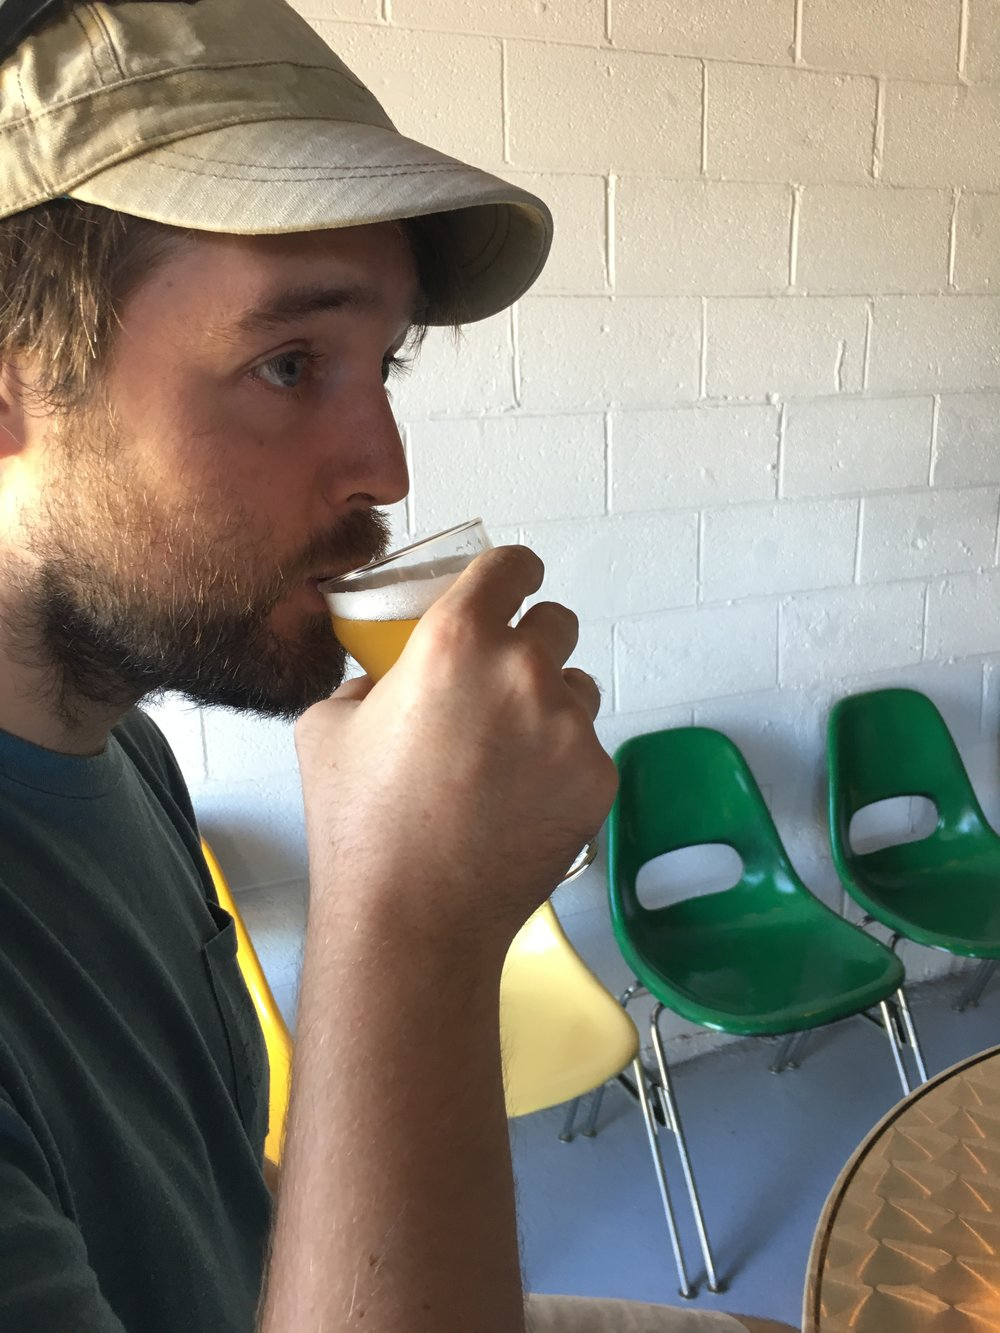 Me enjoying the thoroughly delicious Hopostolic Succession - Dry Hopped Saison